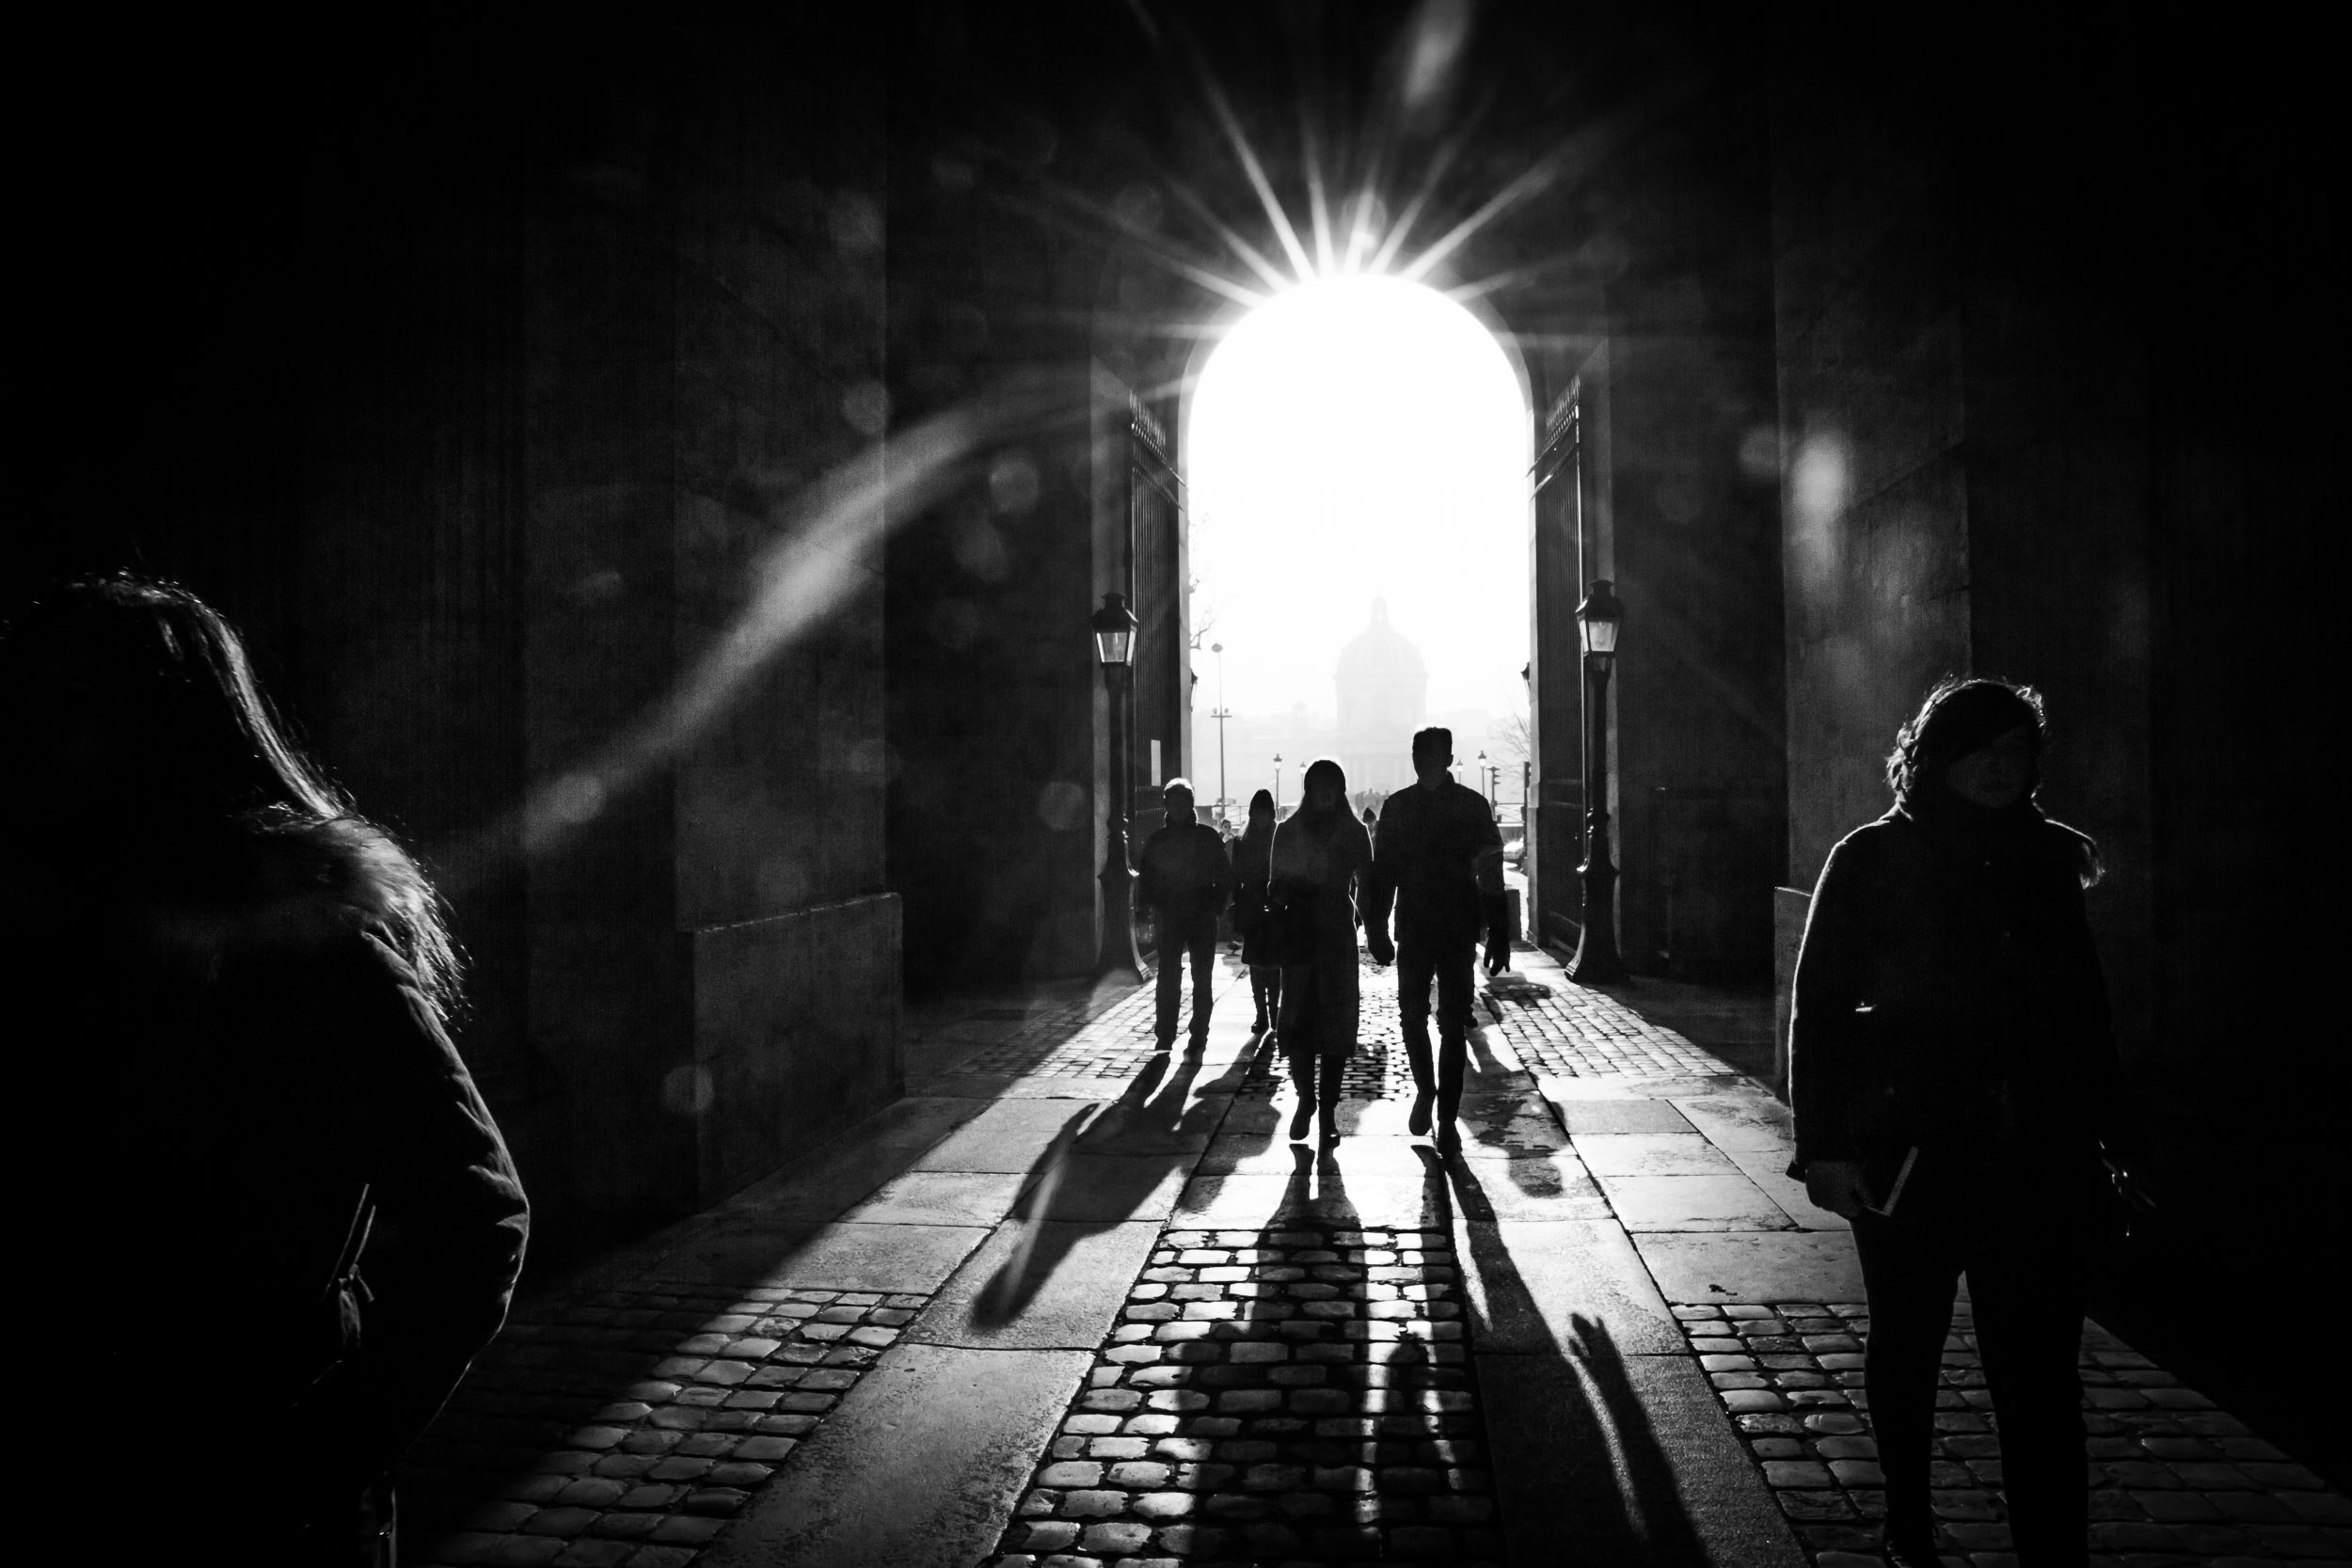 Paris-Louvre-People-Entering-Shadows-from-Beautiful-Light.jpg